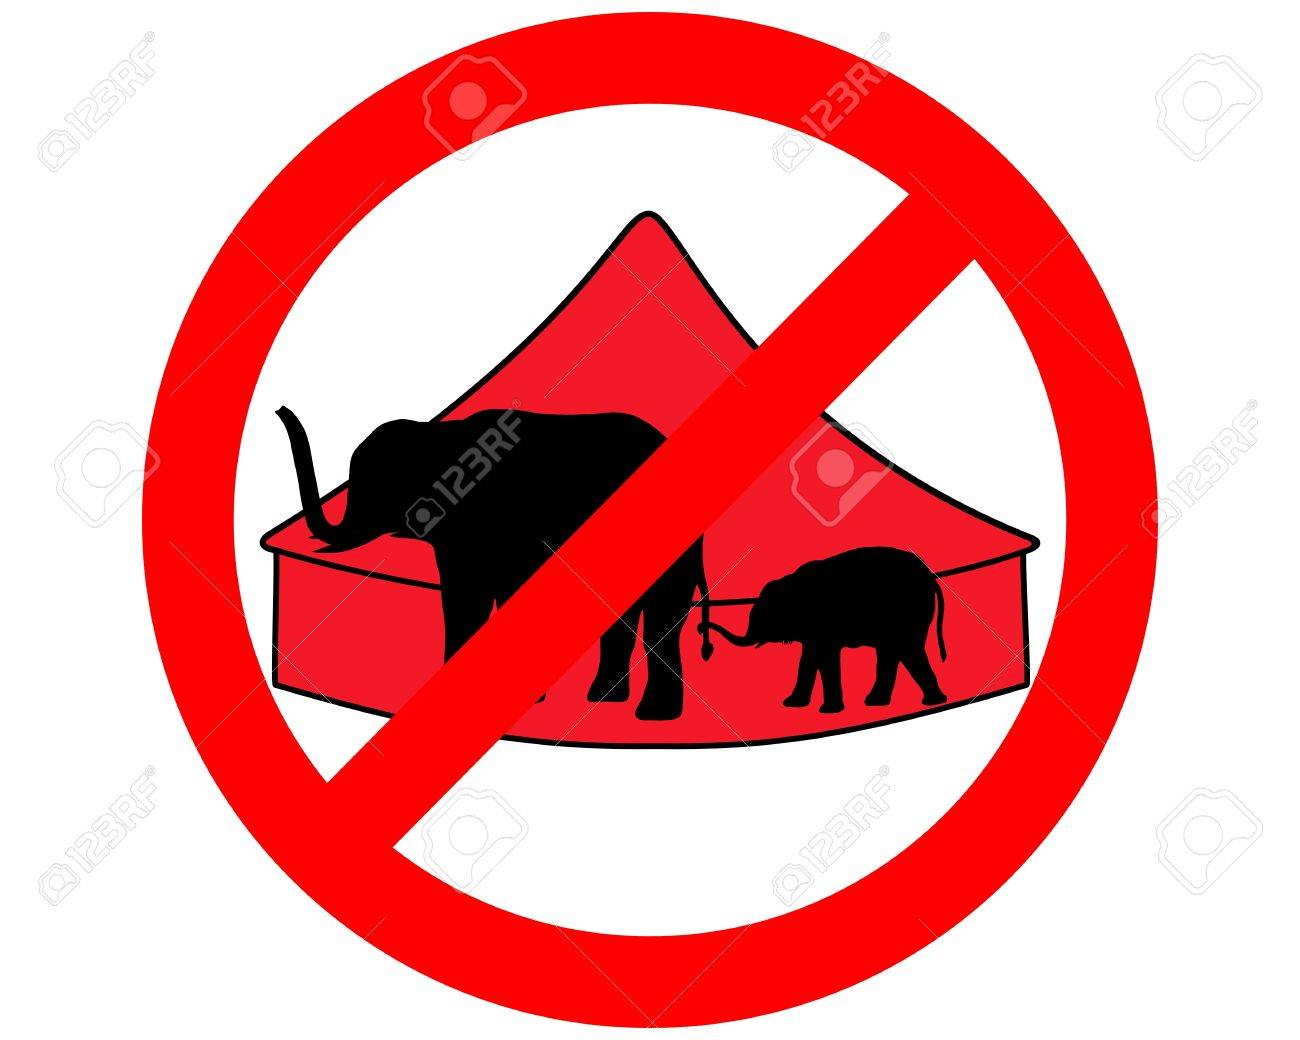 Image result for no circos elefante prohibido